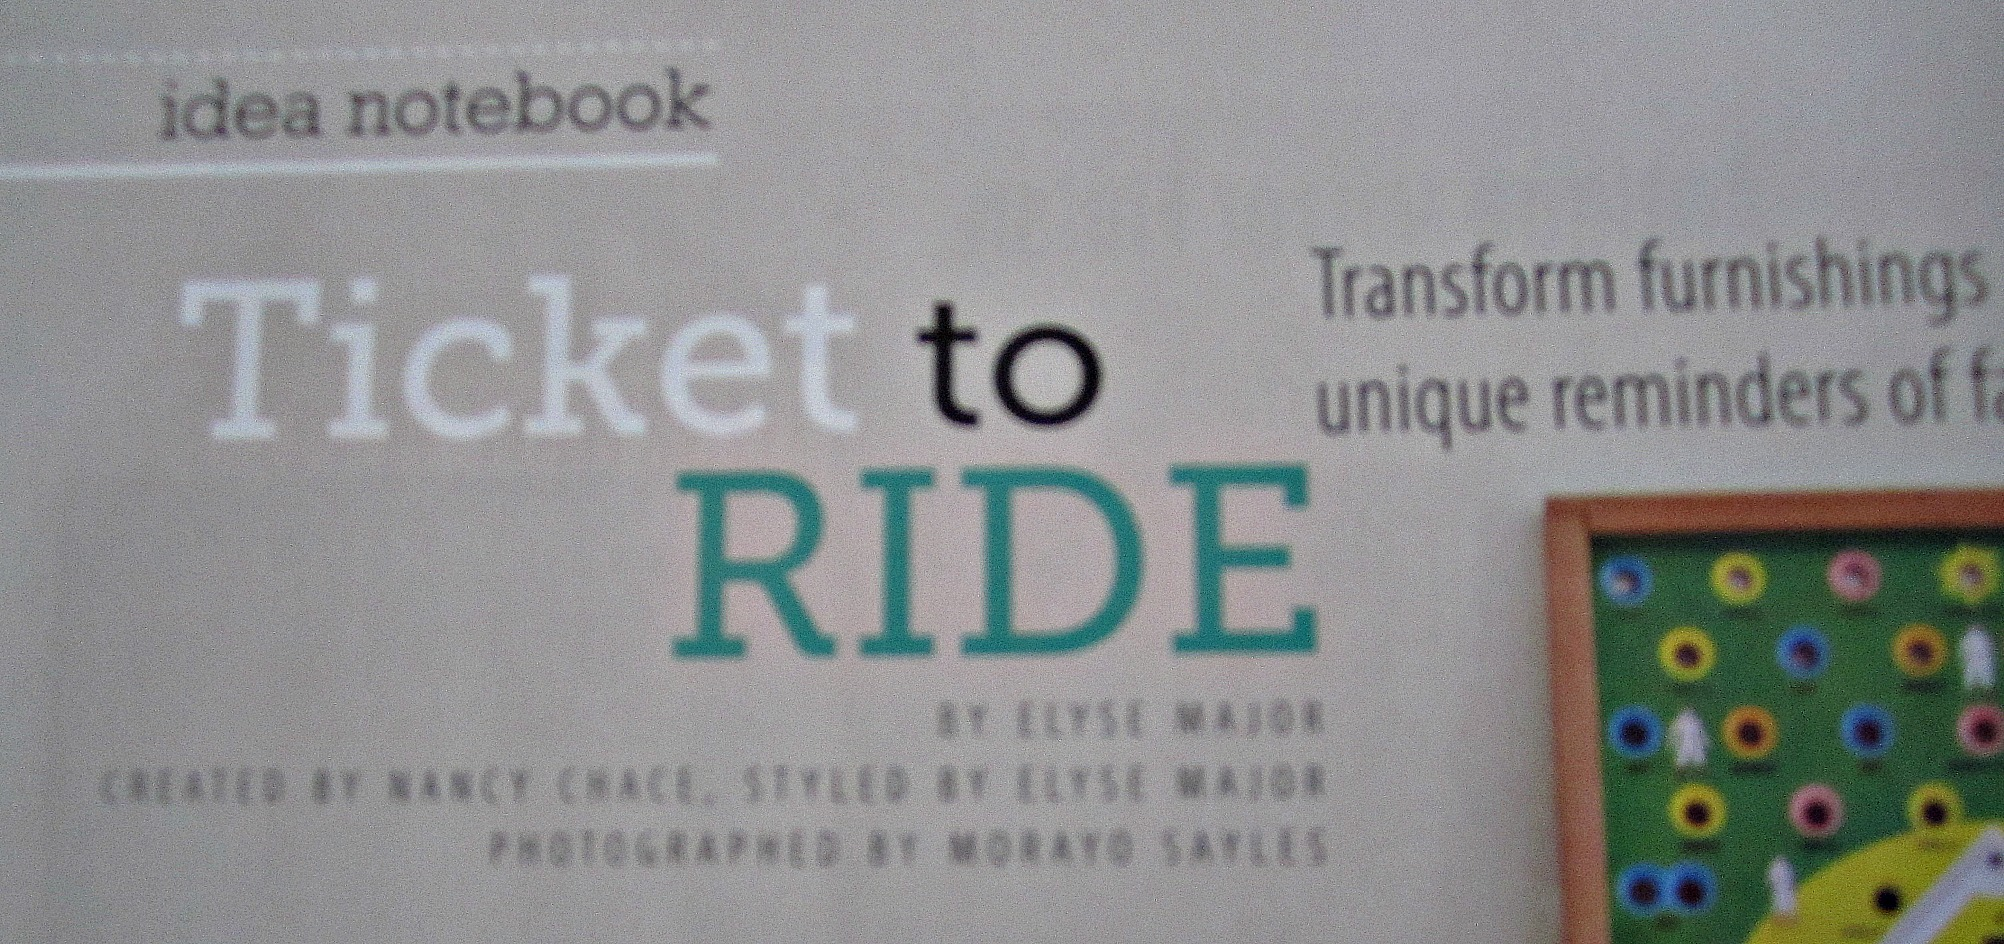 ticket-to-ride pmed